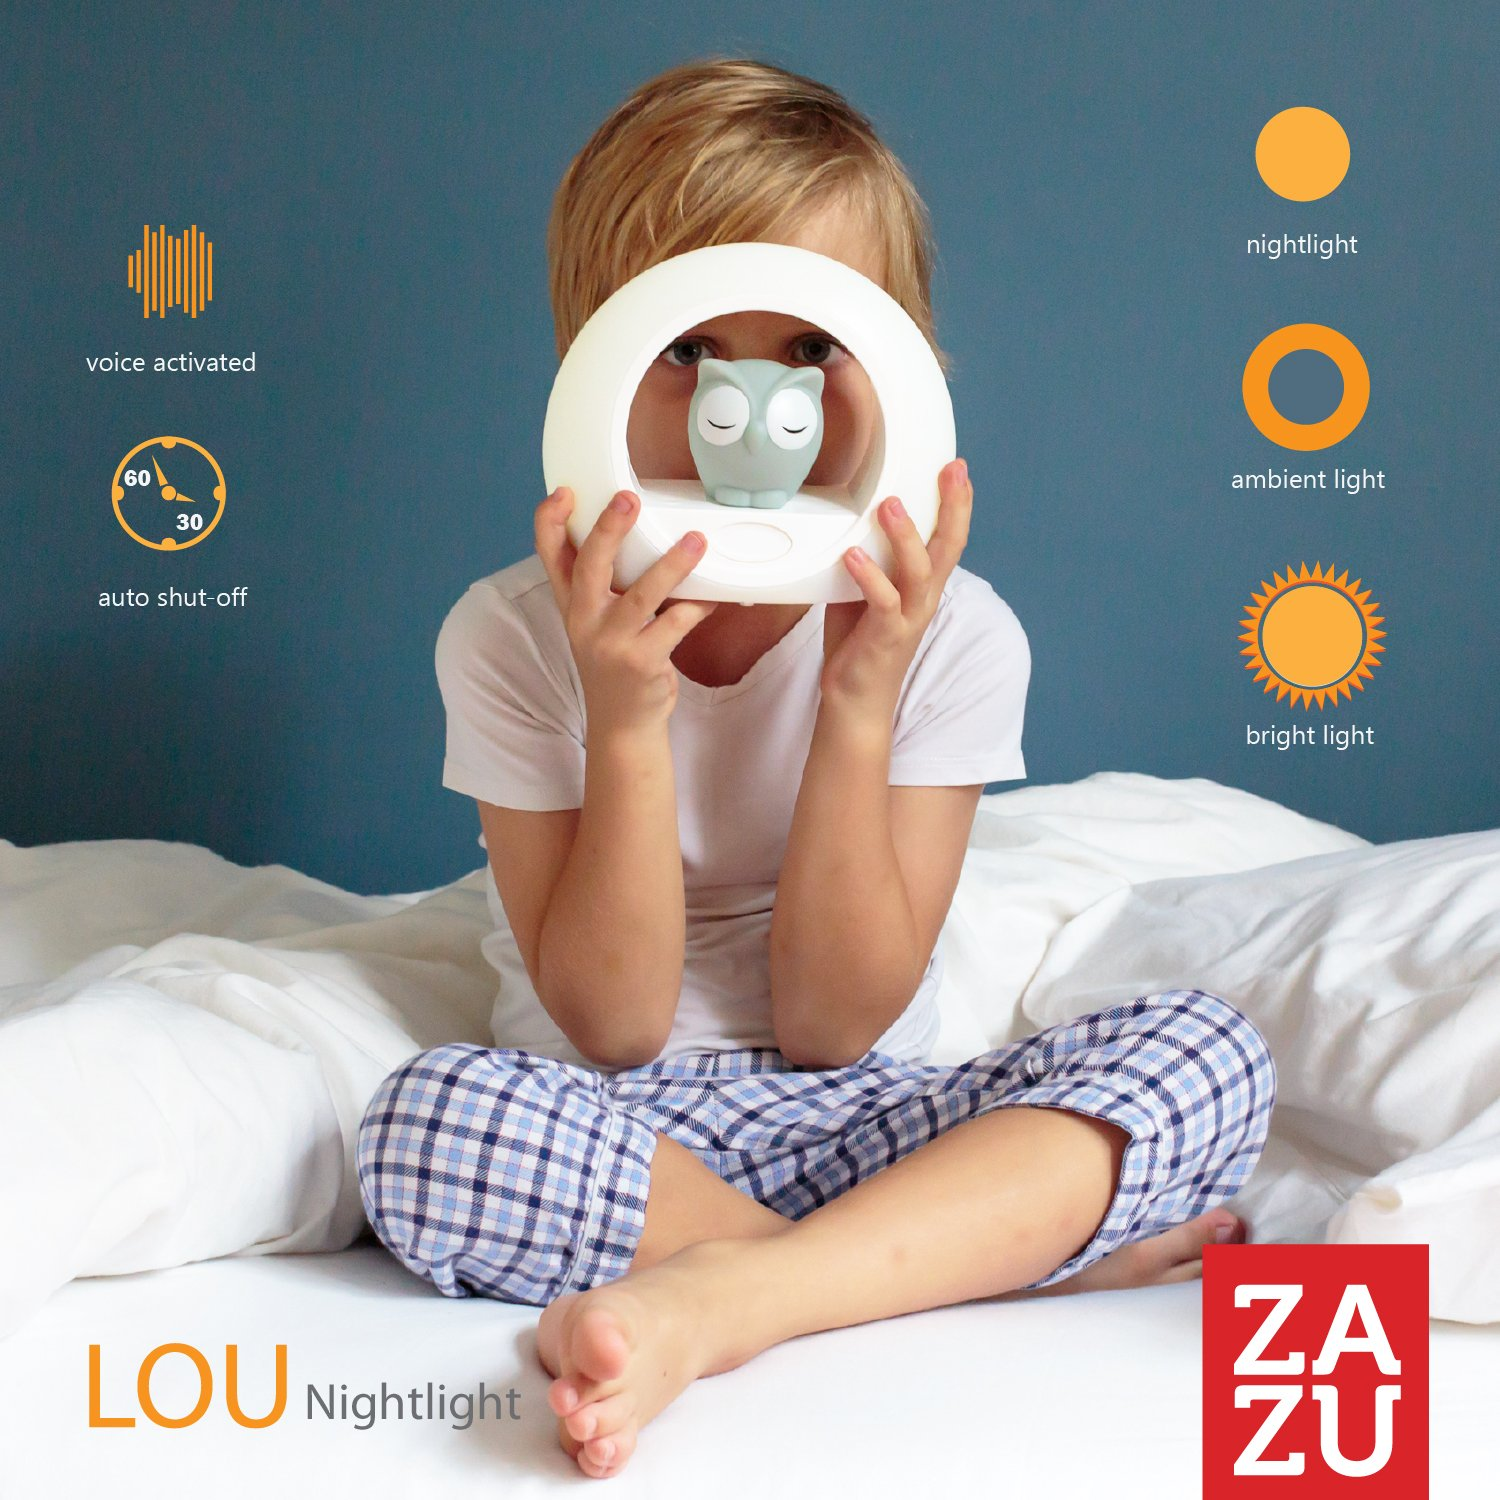 Voice Activated Nightlight Lamp - Sleep Trainer, Blue Owl LOU by Zazu Kids by Zazu Kids